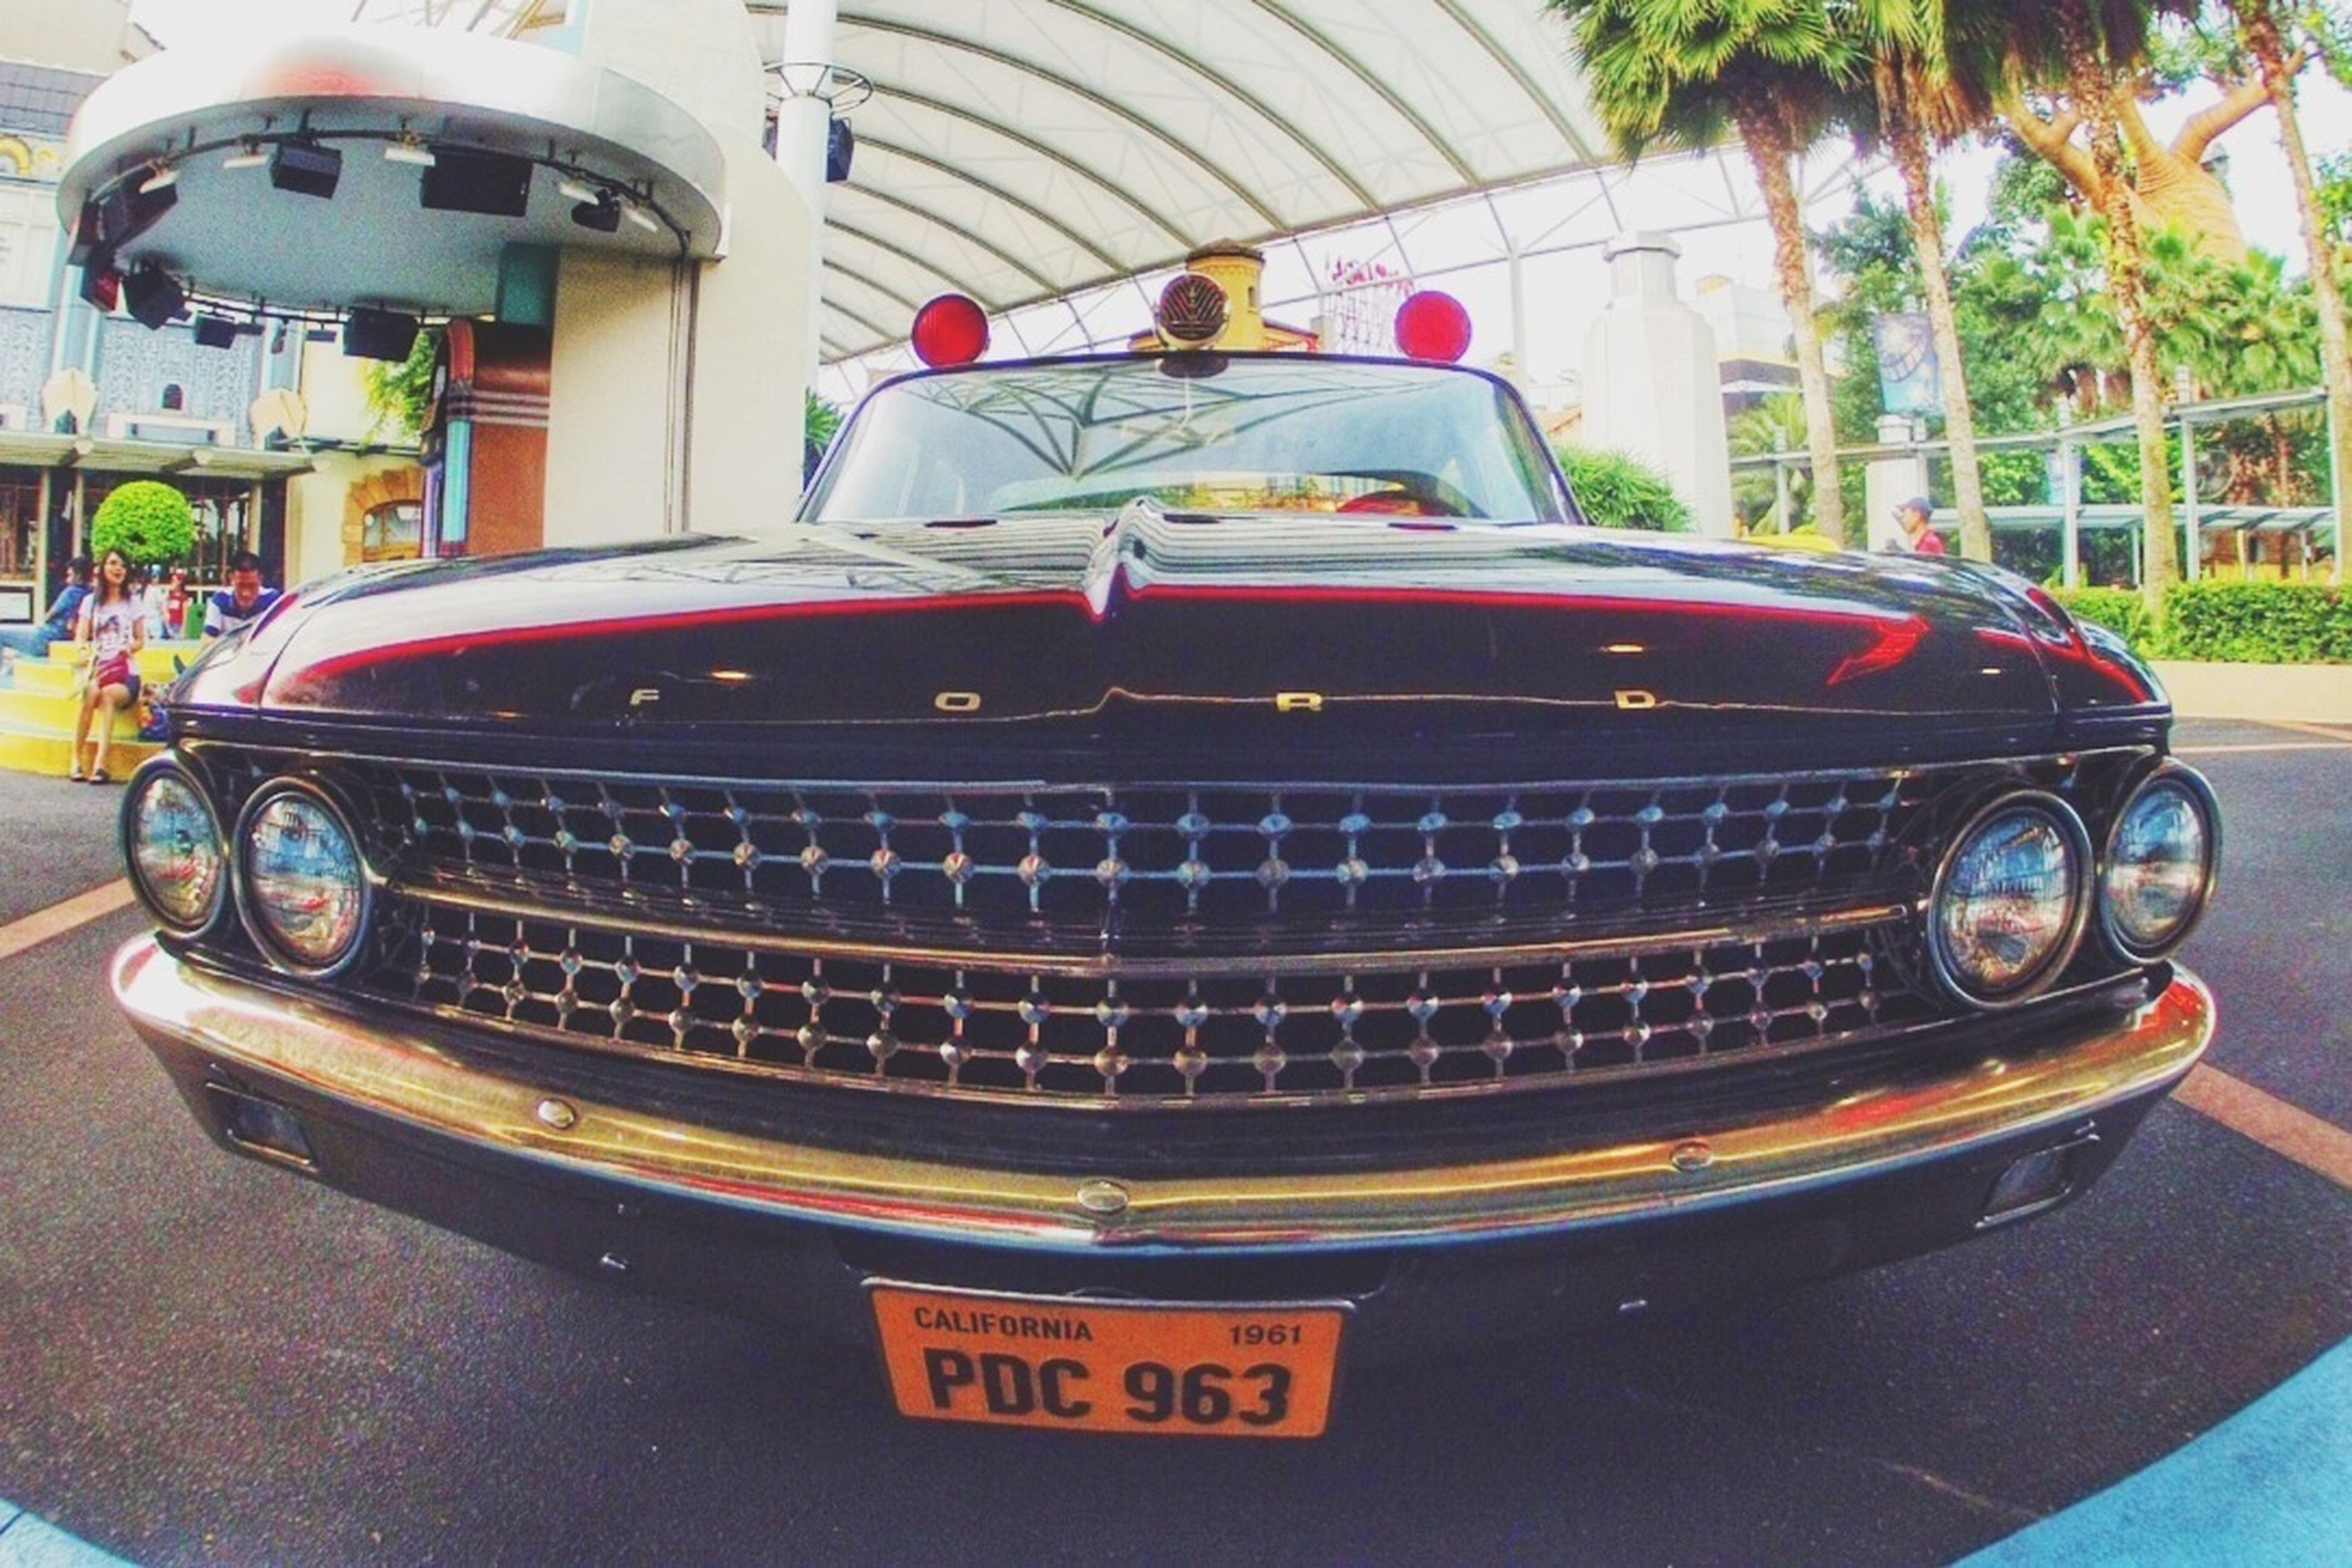 transportation, mode of transport, land vehicle, car, red, stationary, street, vintage car, travel, outdoors, day, old-fashioned, headlight, retro styled, parking, bus, metal, no people, truck, safety